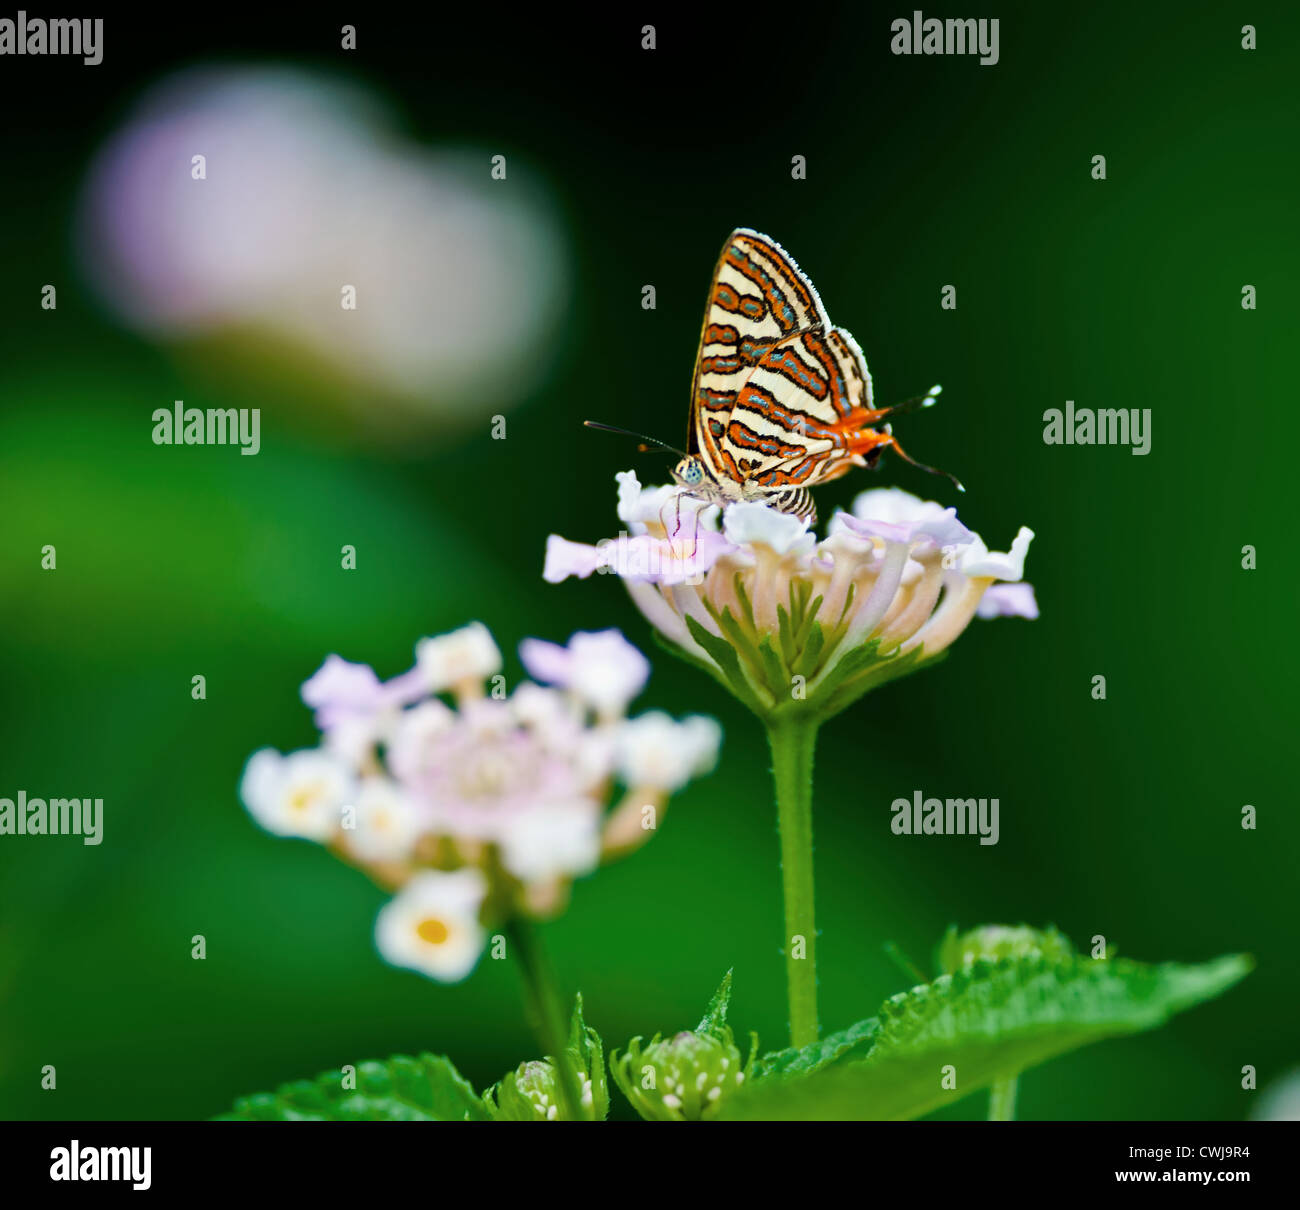 Butterfly, Common Silverline, Spindasis vulcanus, sucking honey from flower, pollinate, close up, copy space - Stock Image